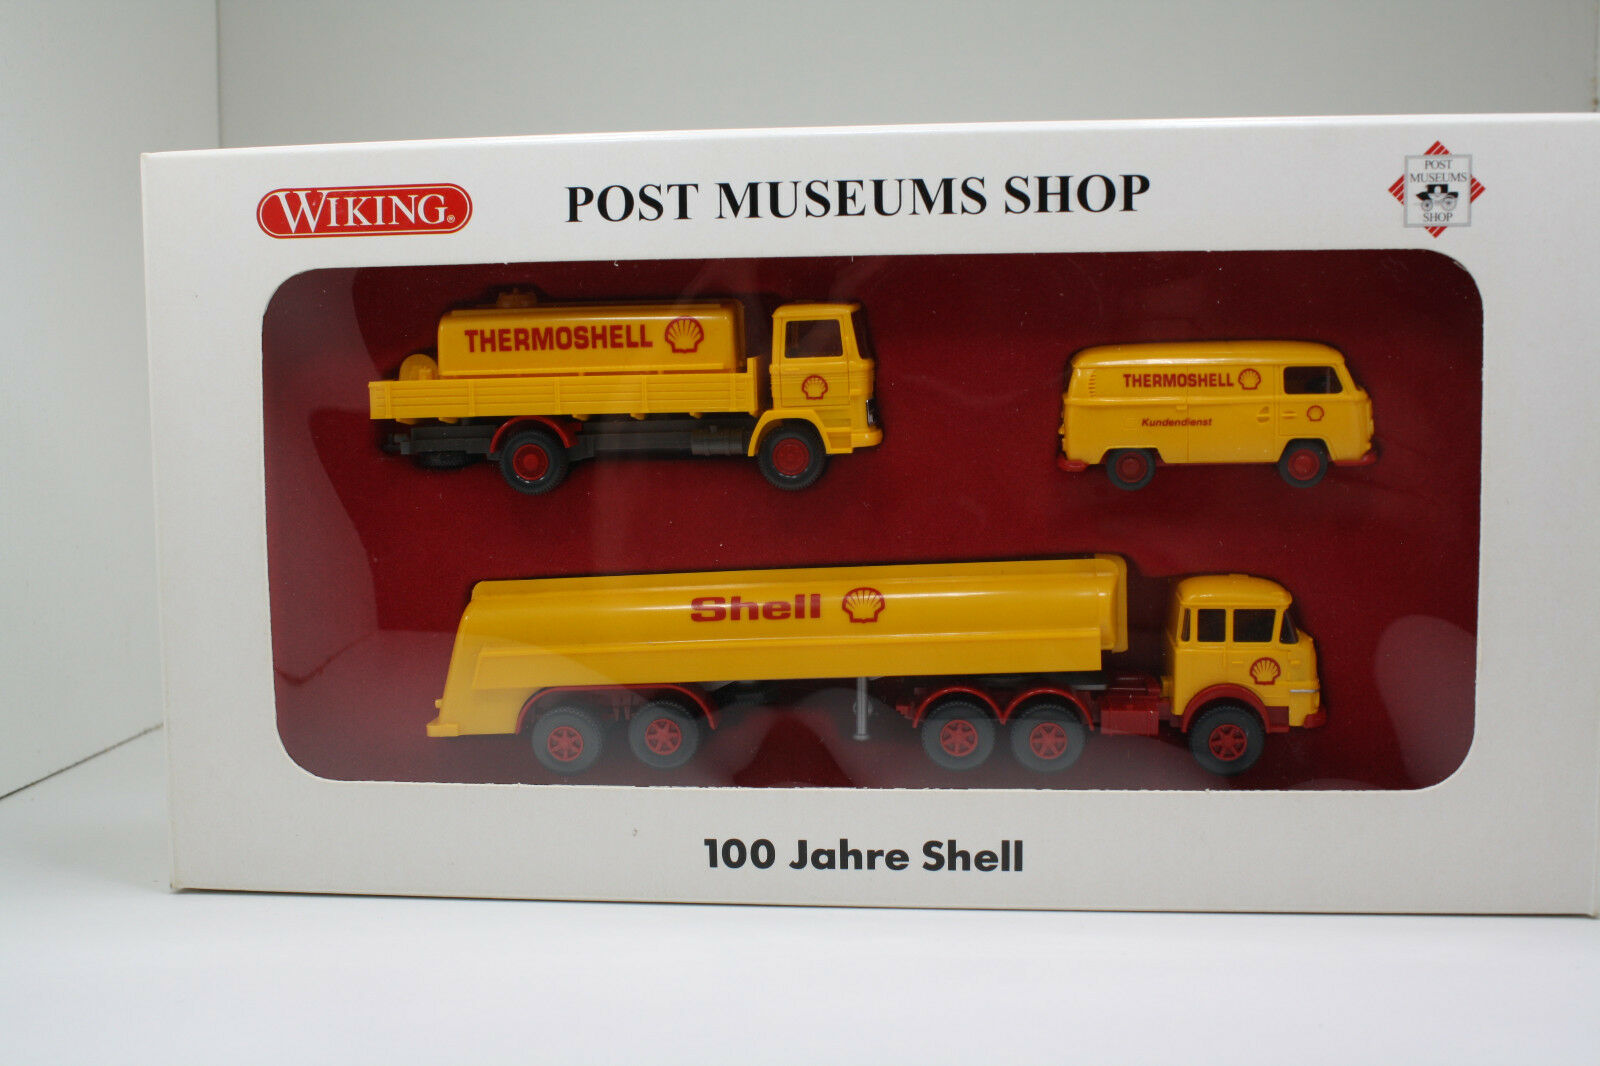 100 Jahre Shell - Post Post Post Museums Shop Set (Wiking BB S 71 2bcad9